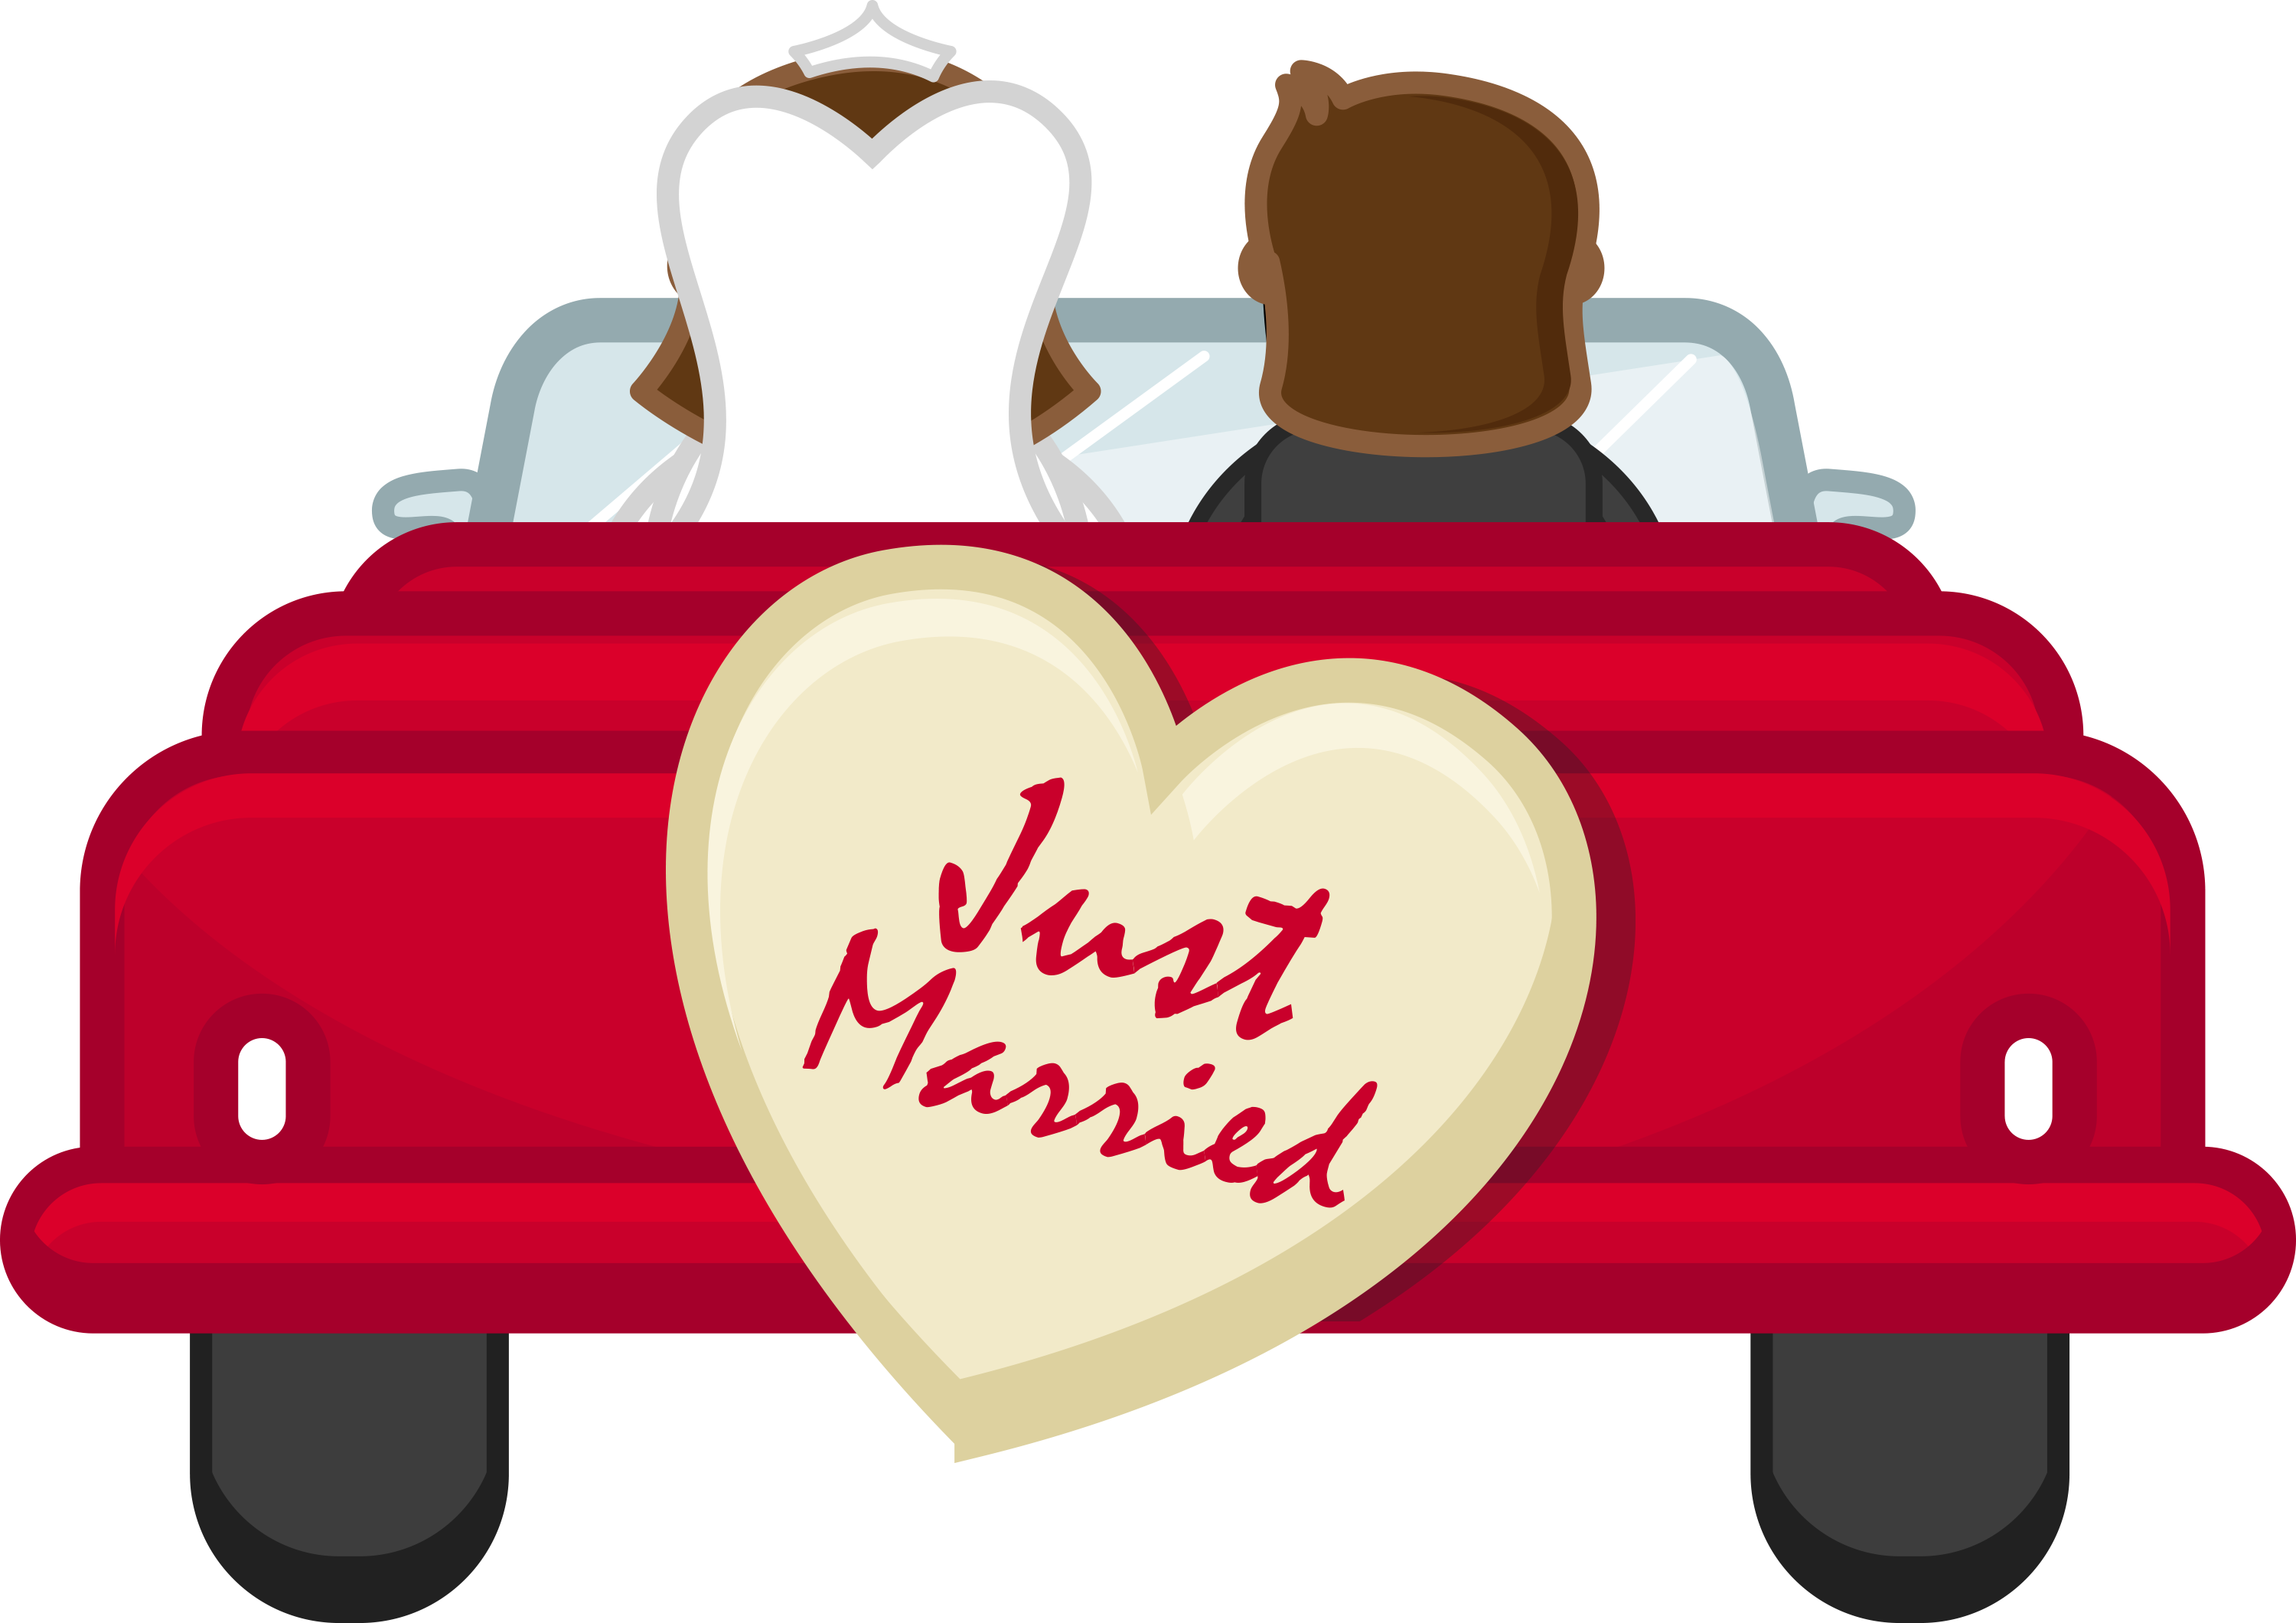 Honeymoon car clipart graphic royalty free library honeymoon clipart free - Clipground graphic royalty free library